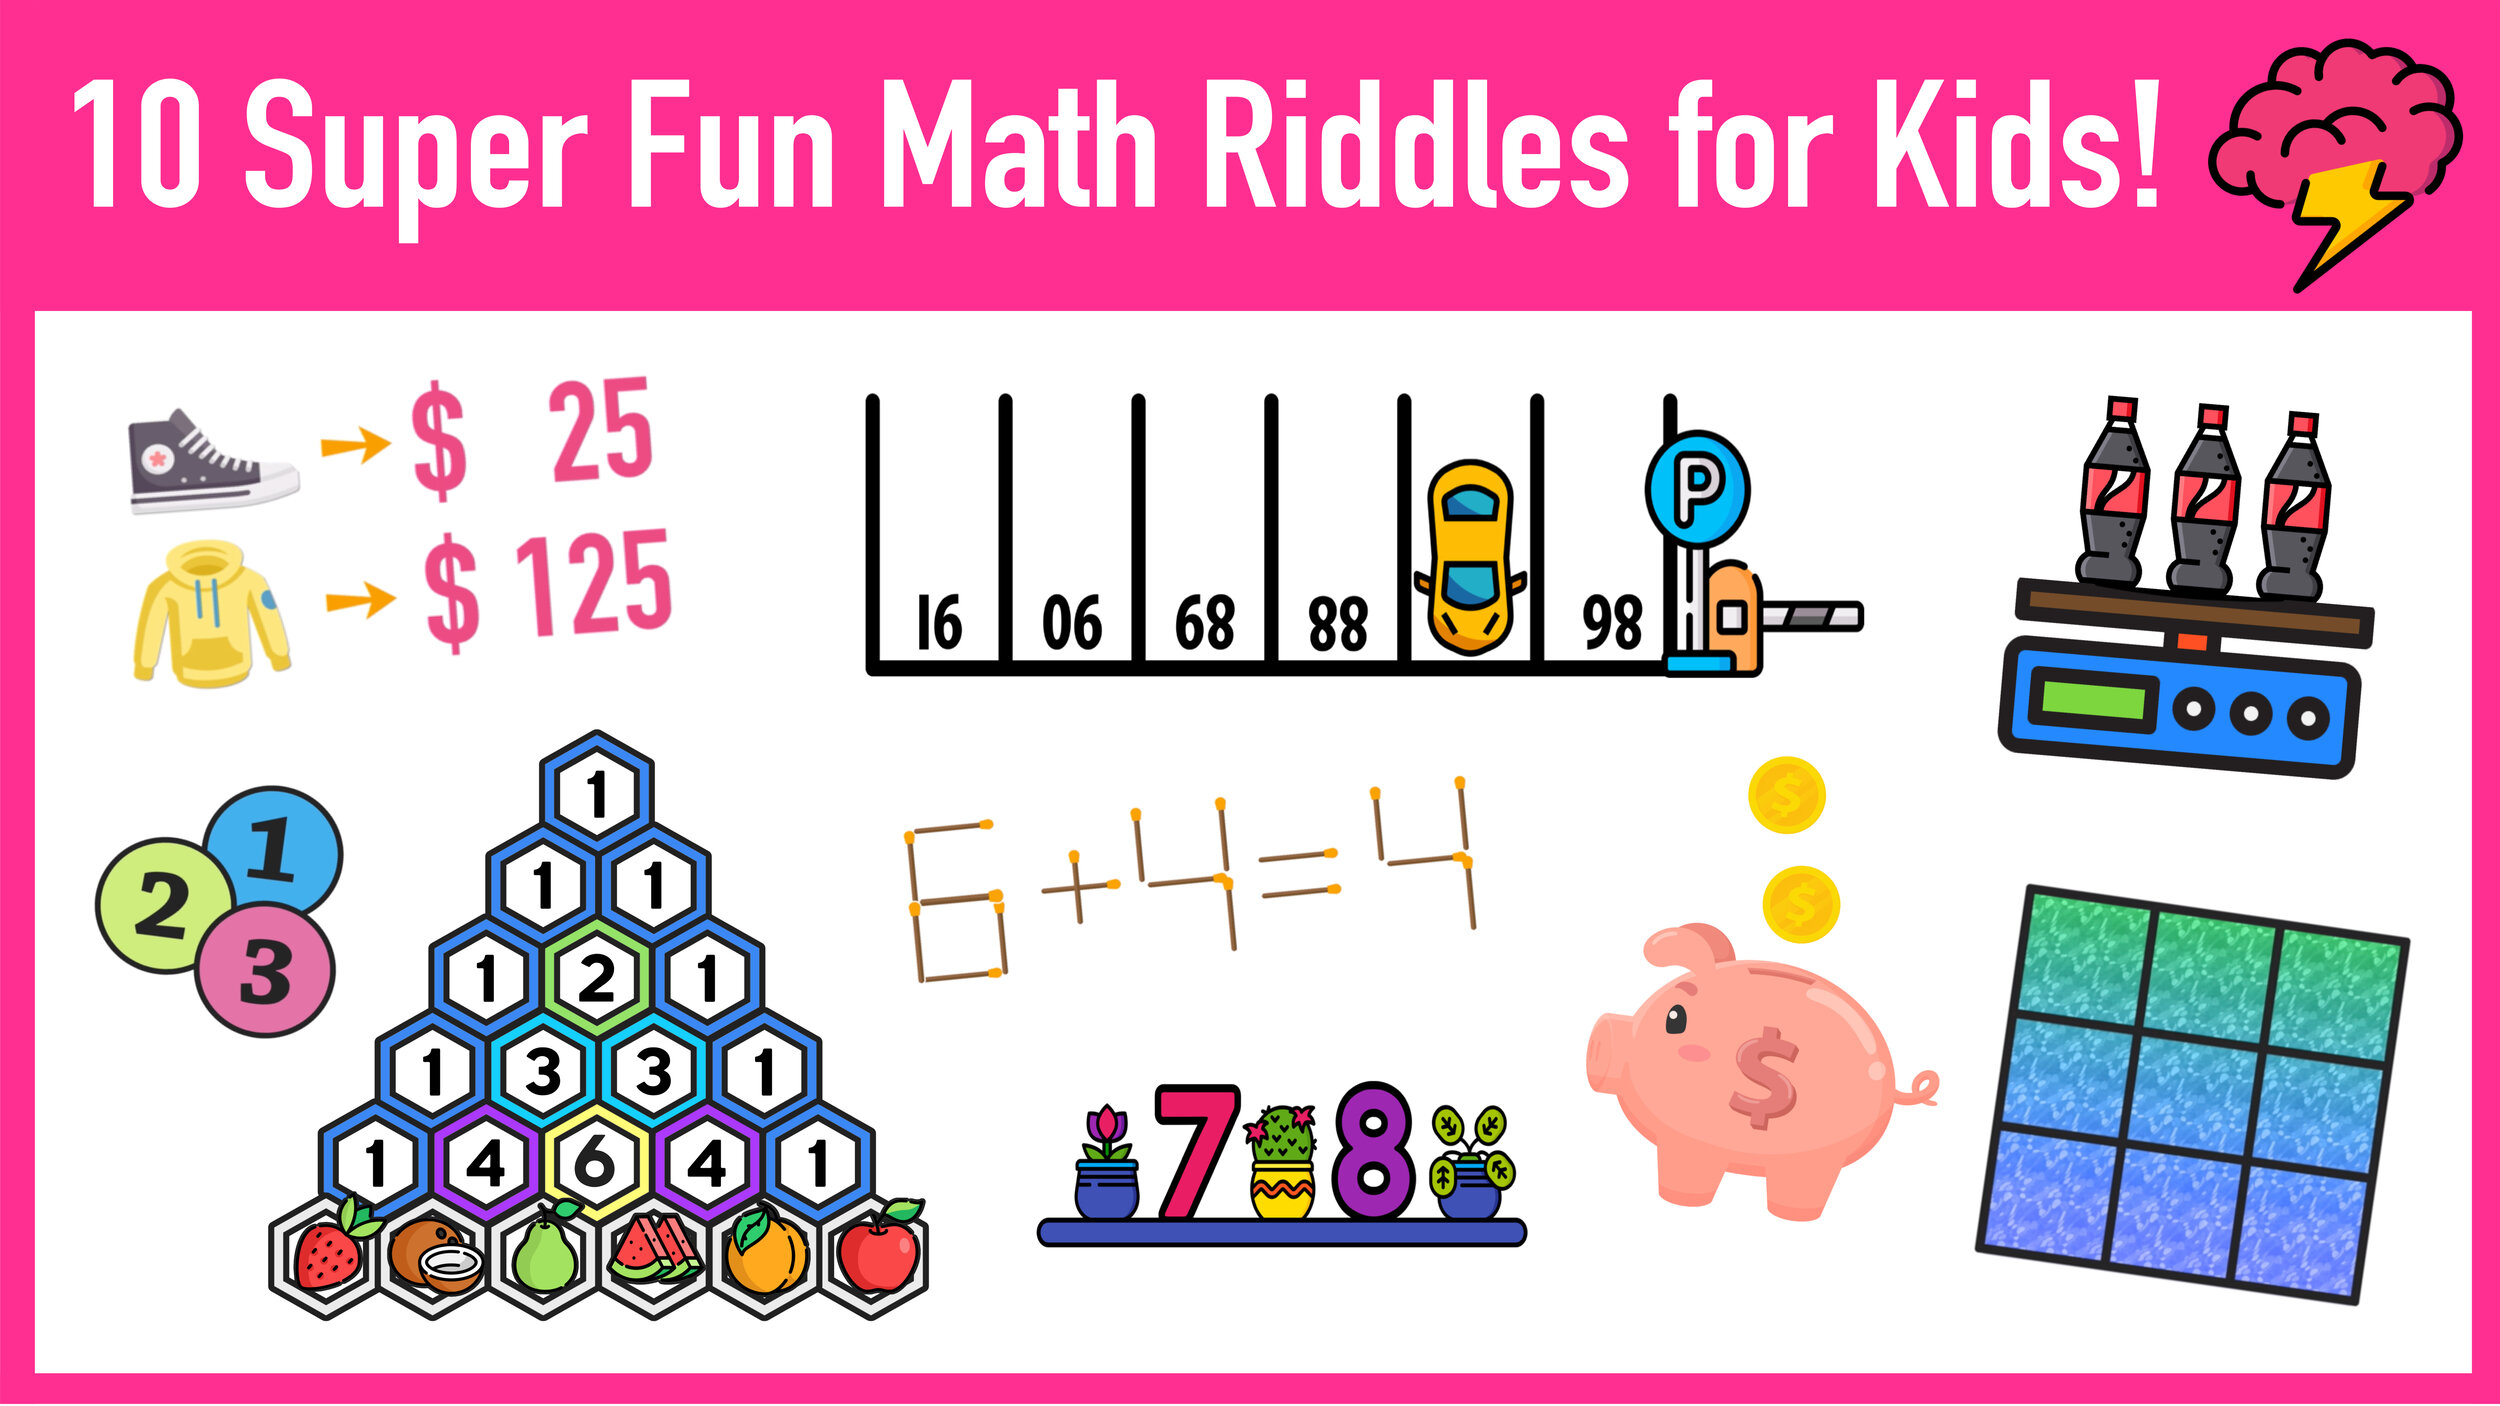 10 Super Fun Math Riddles for Kids Ages 10+ (with Answers) — Mashup Math [ 1406 x 2500 Pixel ]